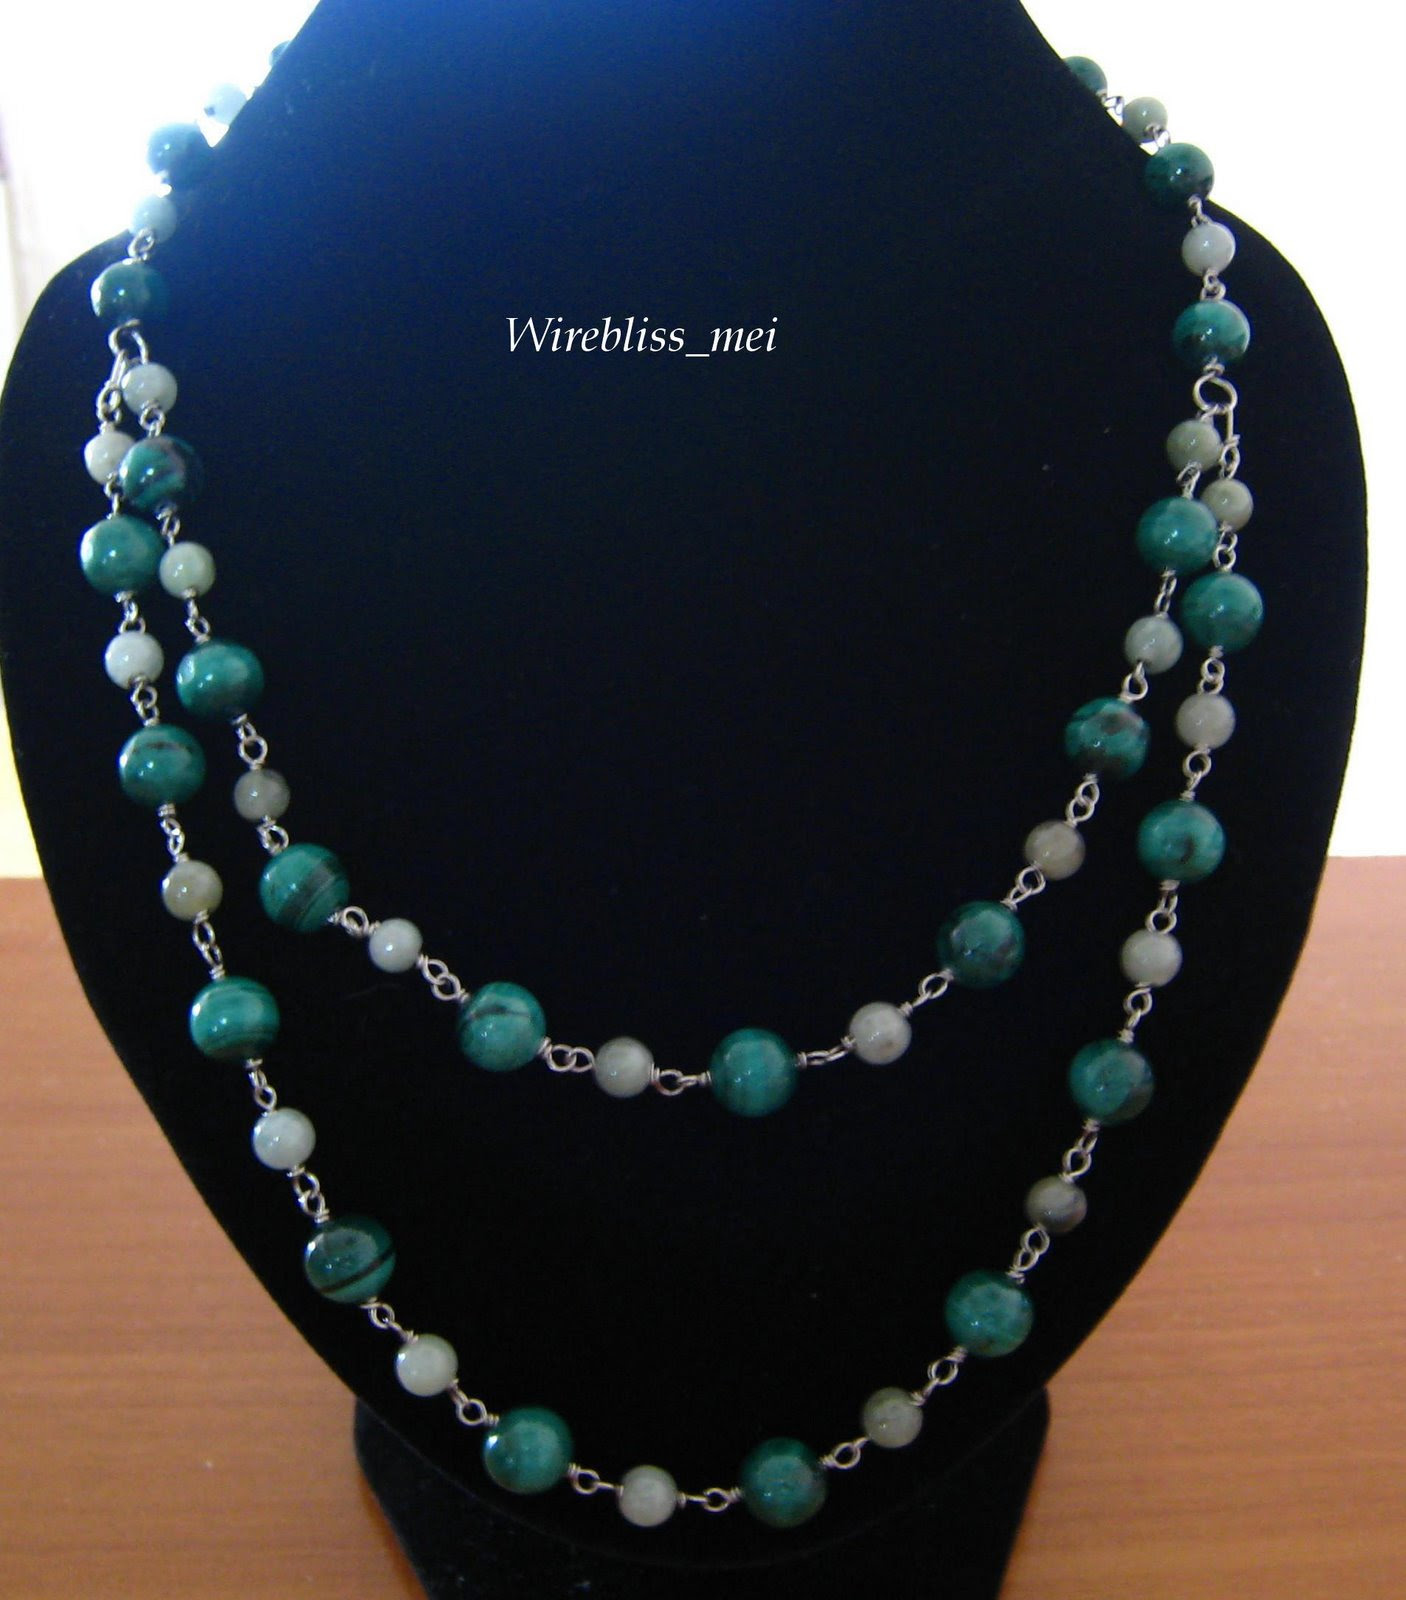 wire wrap malachite and jade necklace - detachable double strand necklace